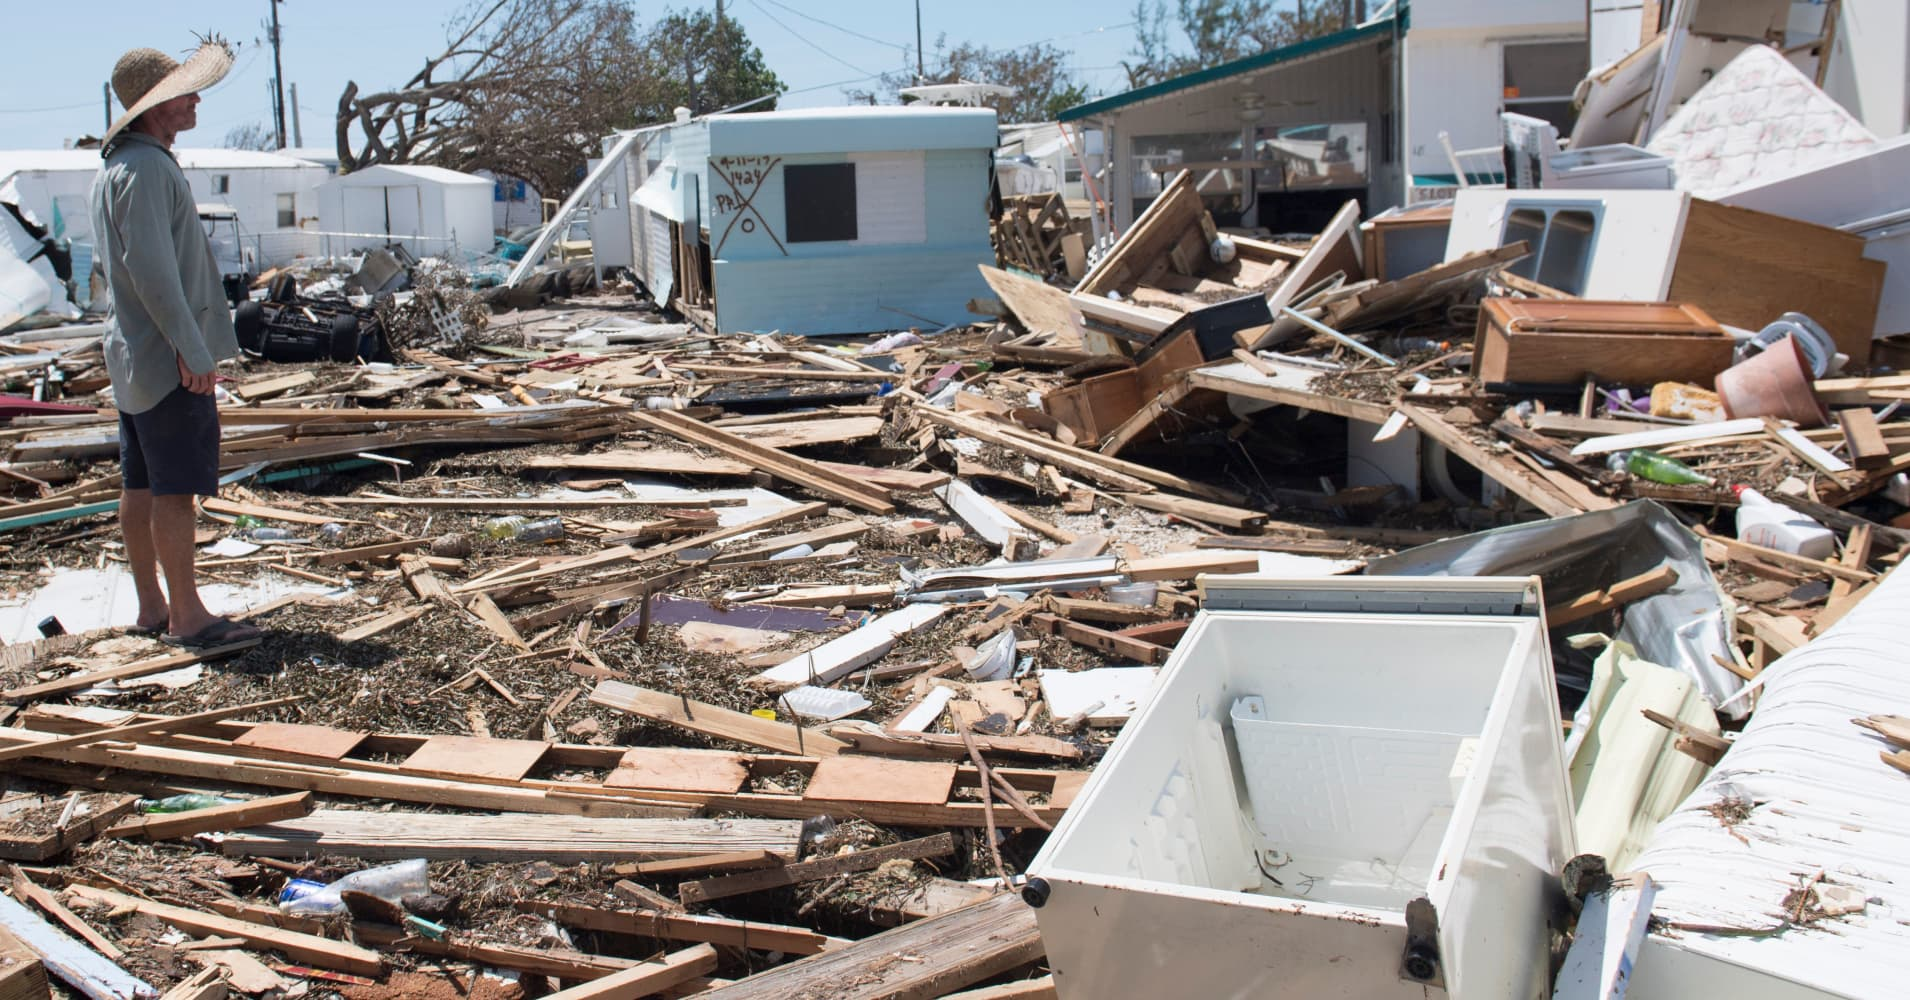 Bill Quinn surveys the damage caused to his trailer home from Hurricane Irma at the Seabreeze Trailer Park in Islamorada, in the Florida Keys, September 12, 2017.